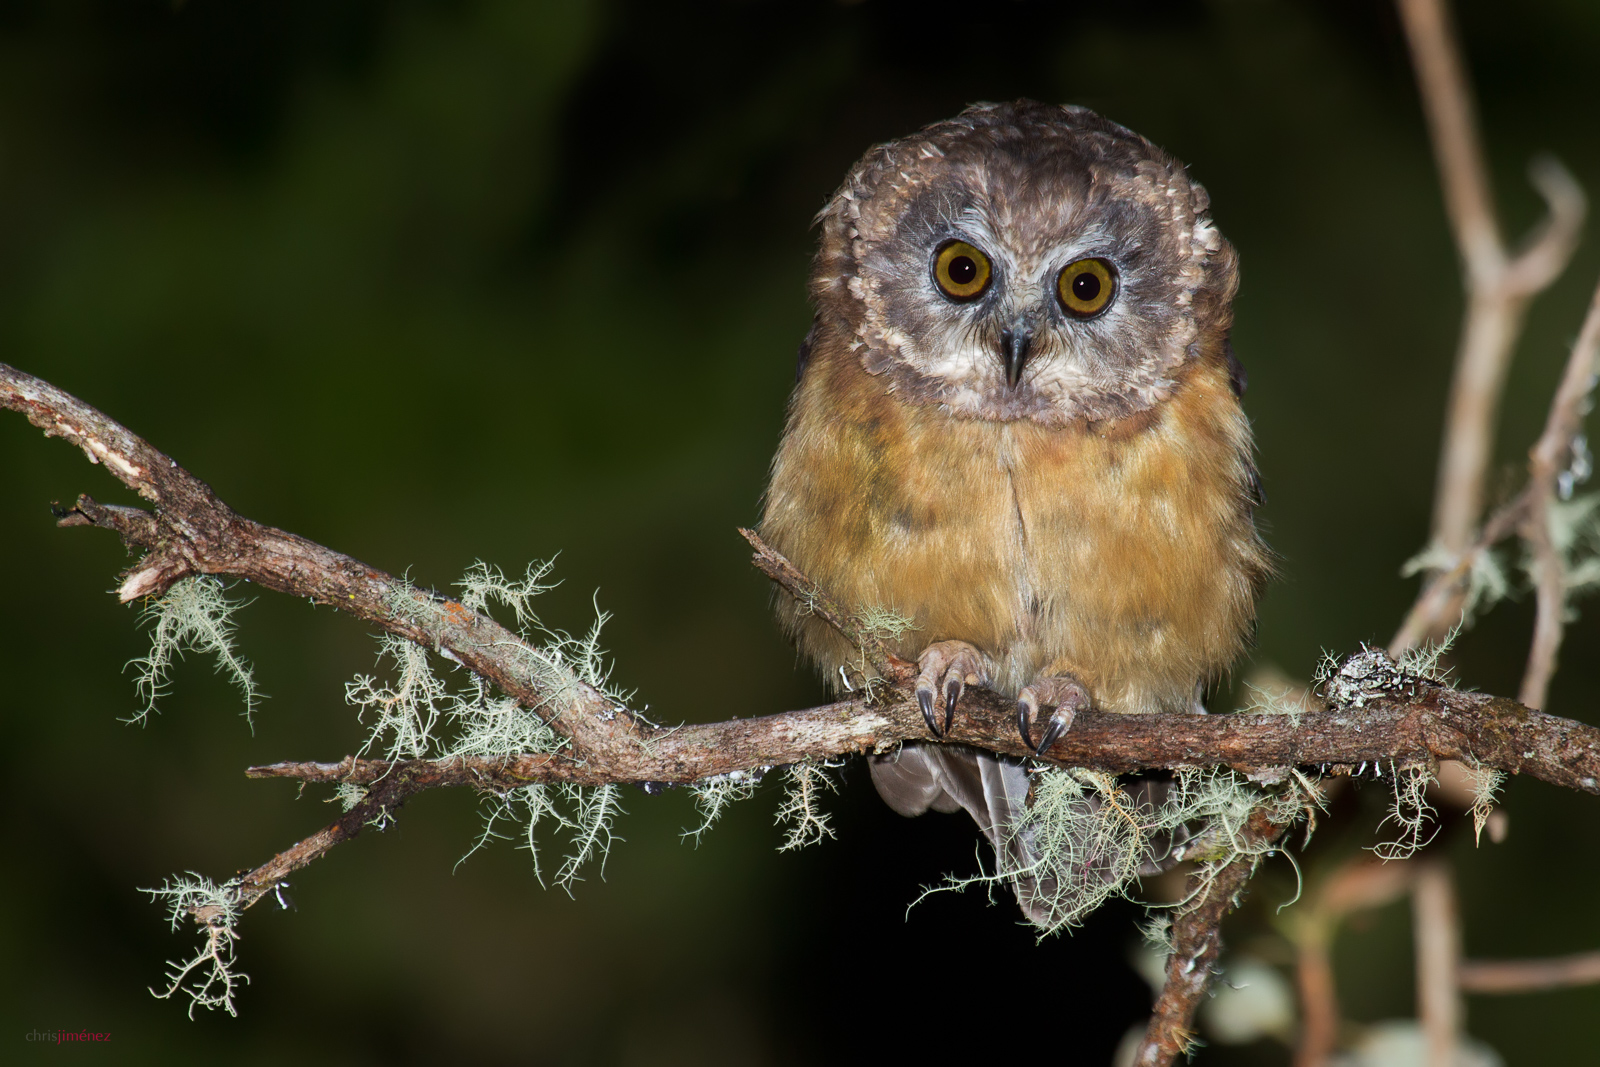 Unspotted Saw-whet Owl in Costa Rica